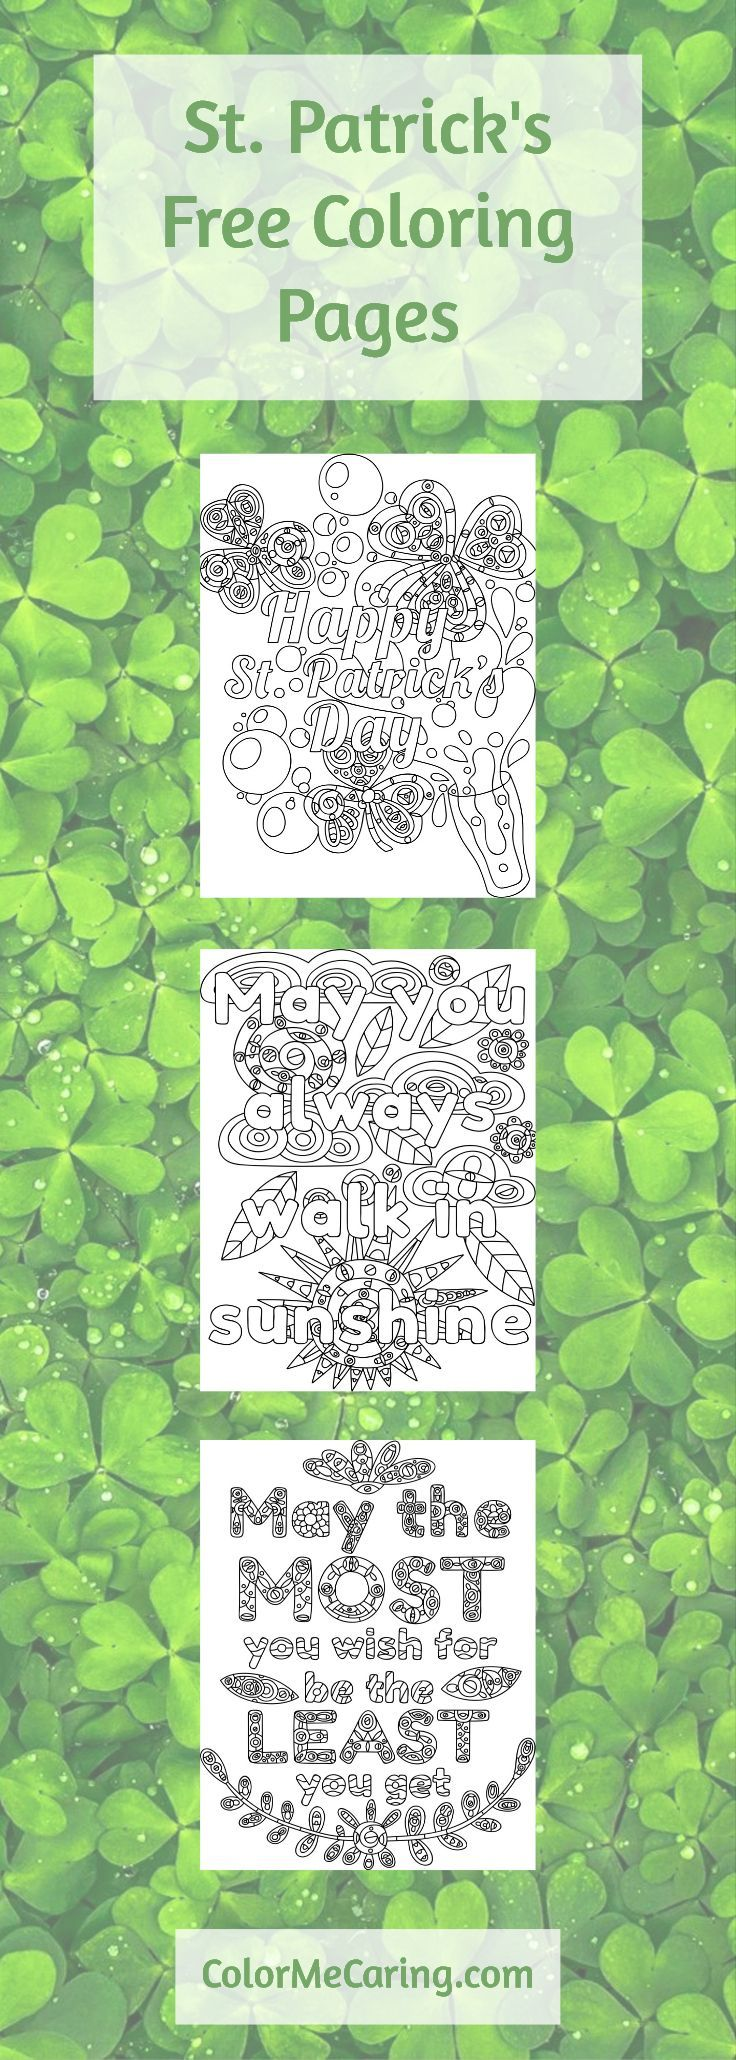 Free coloring pages of memorial day - March Free Coloring Pages St Patrick S Irish Blessings